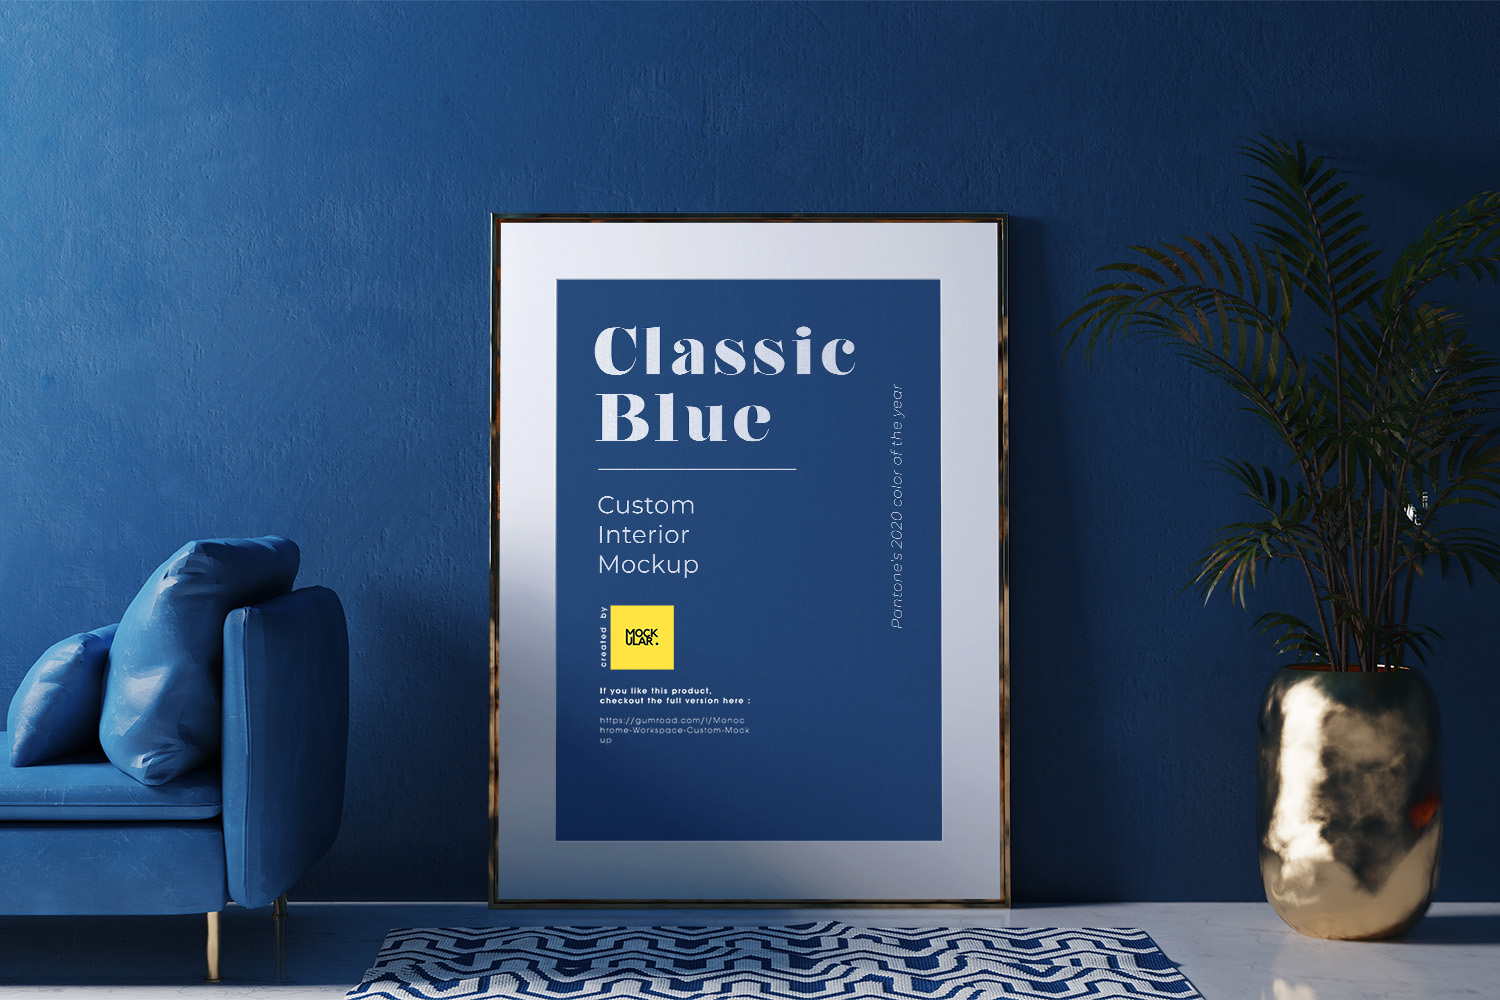 Poster Frame Free Mockup in the Classic Blue Interior